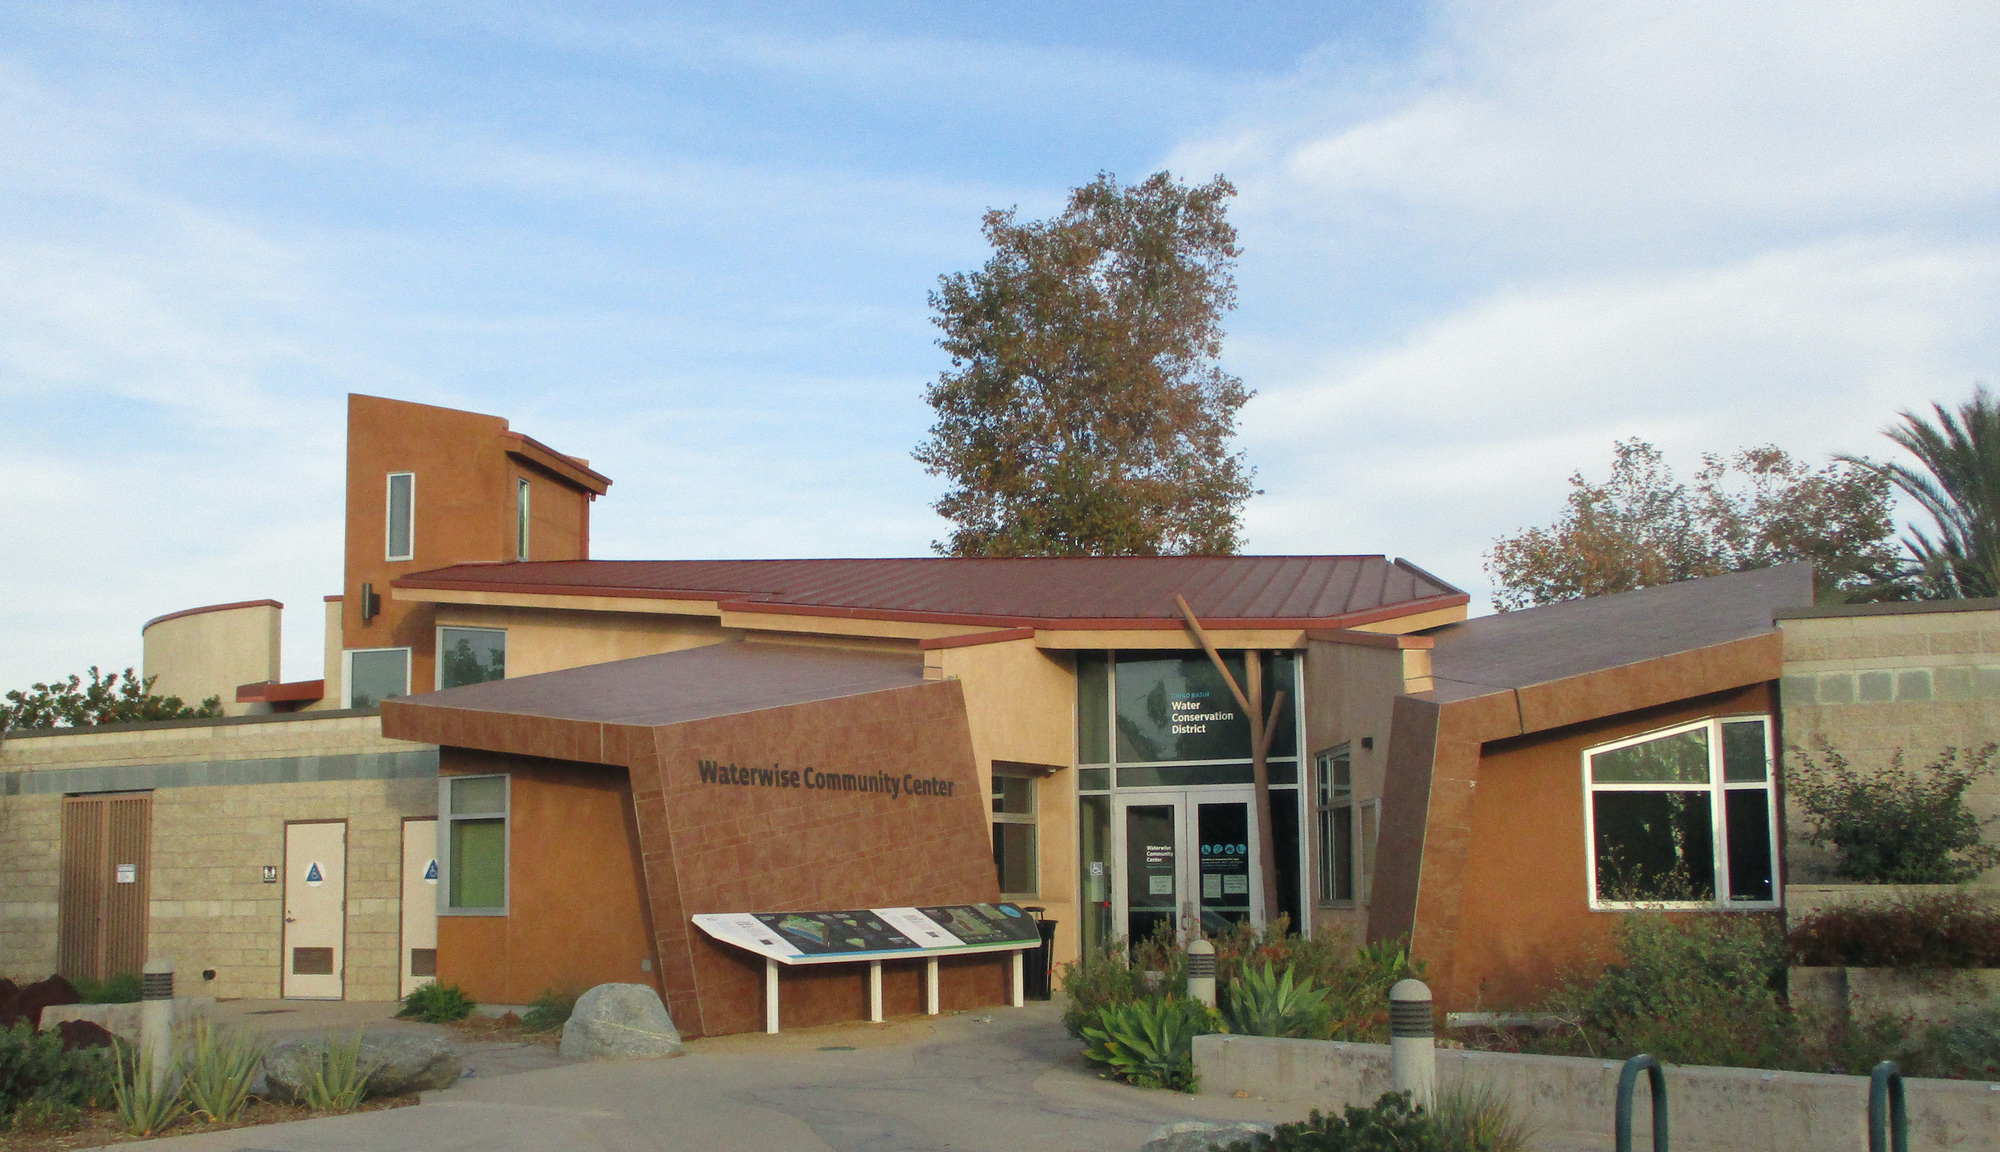 Waterwise Community Center